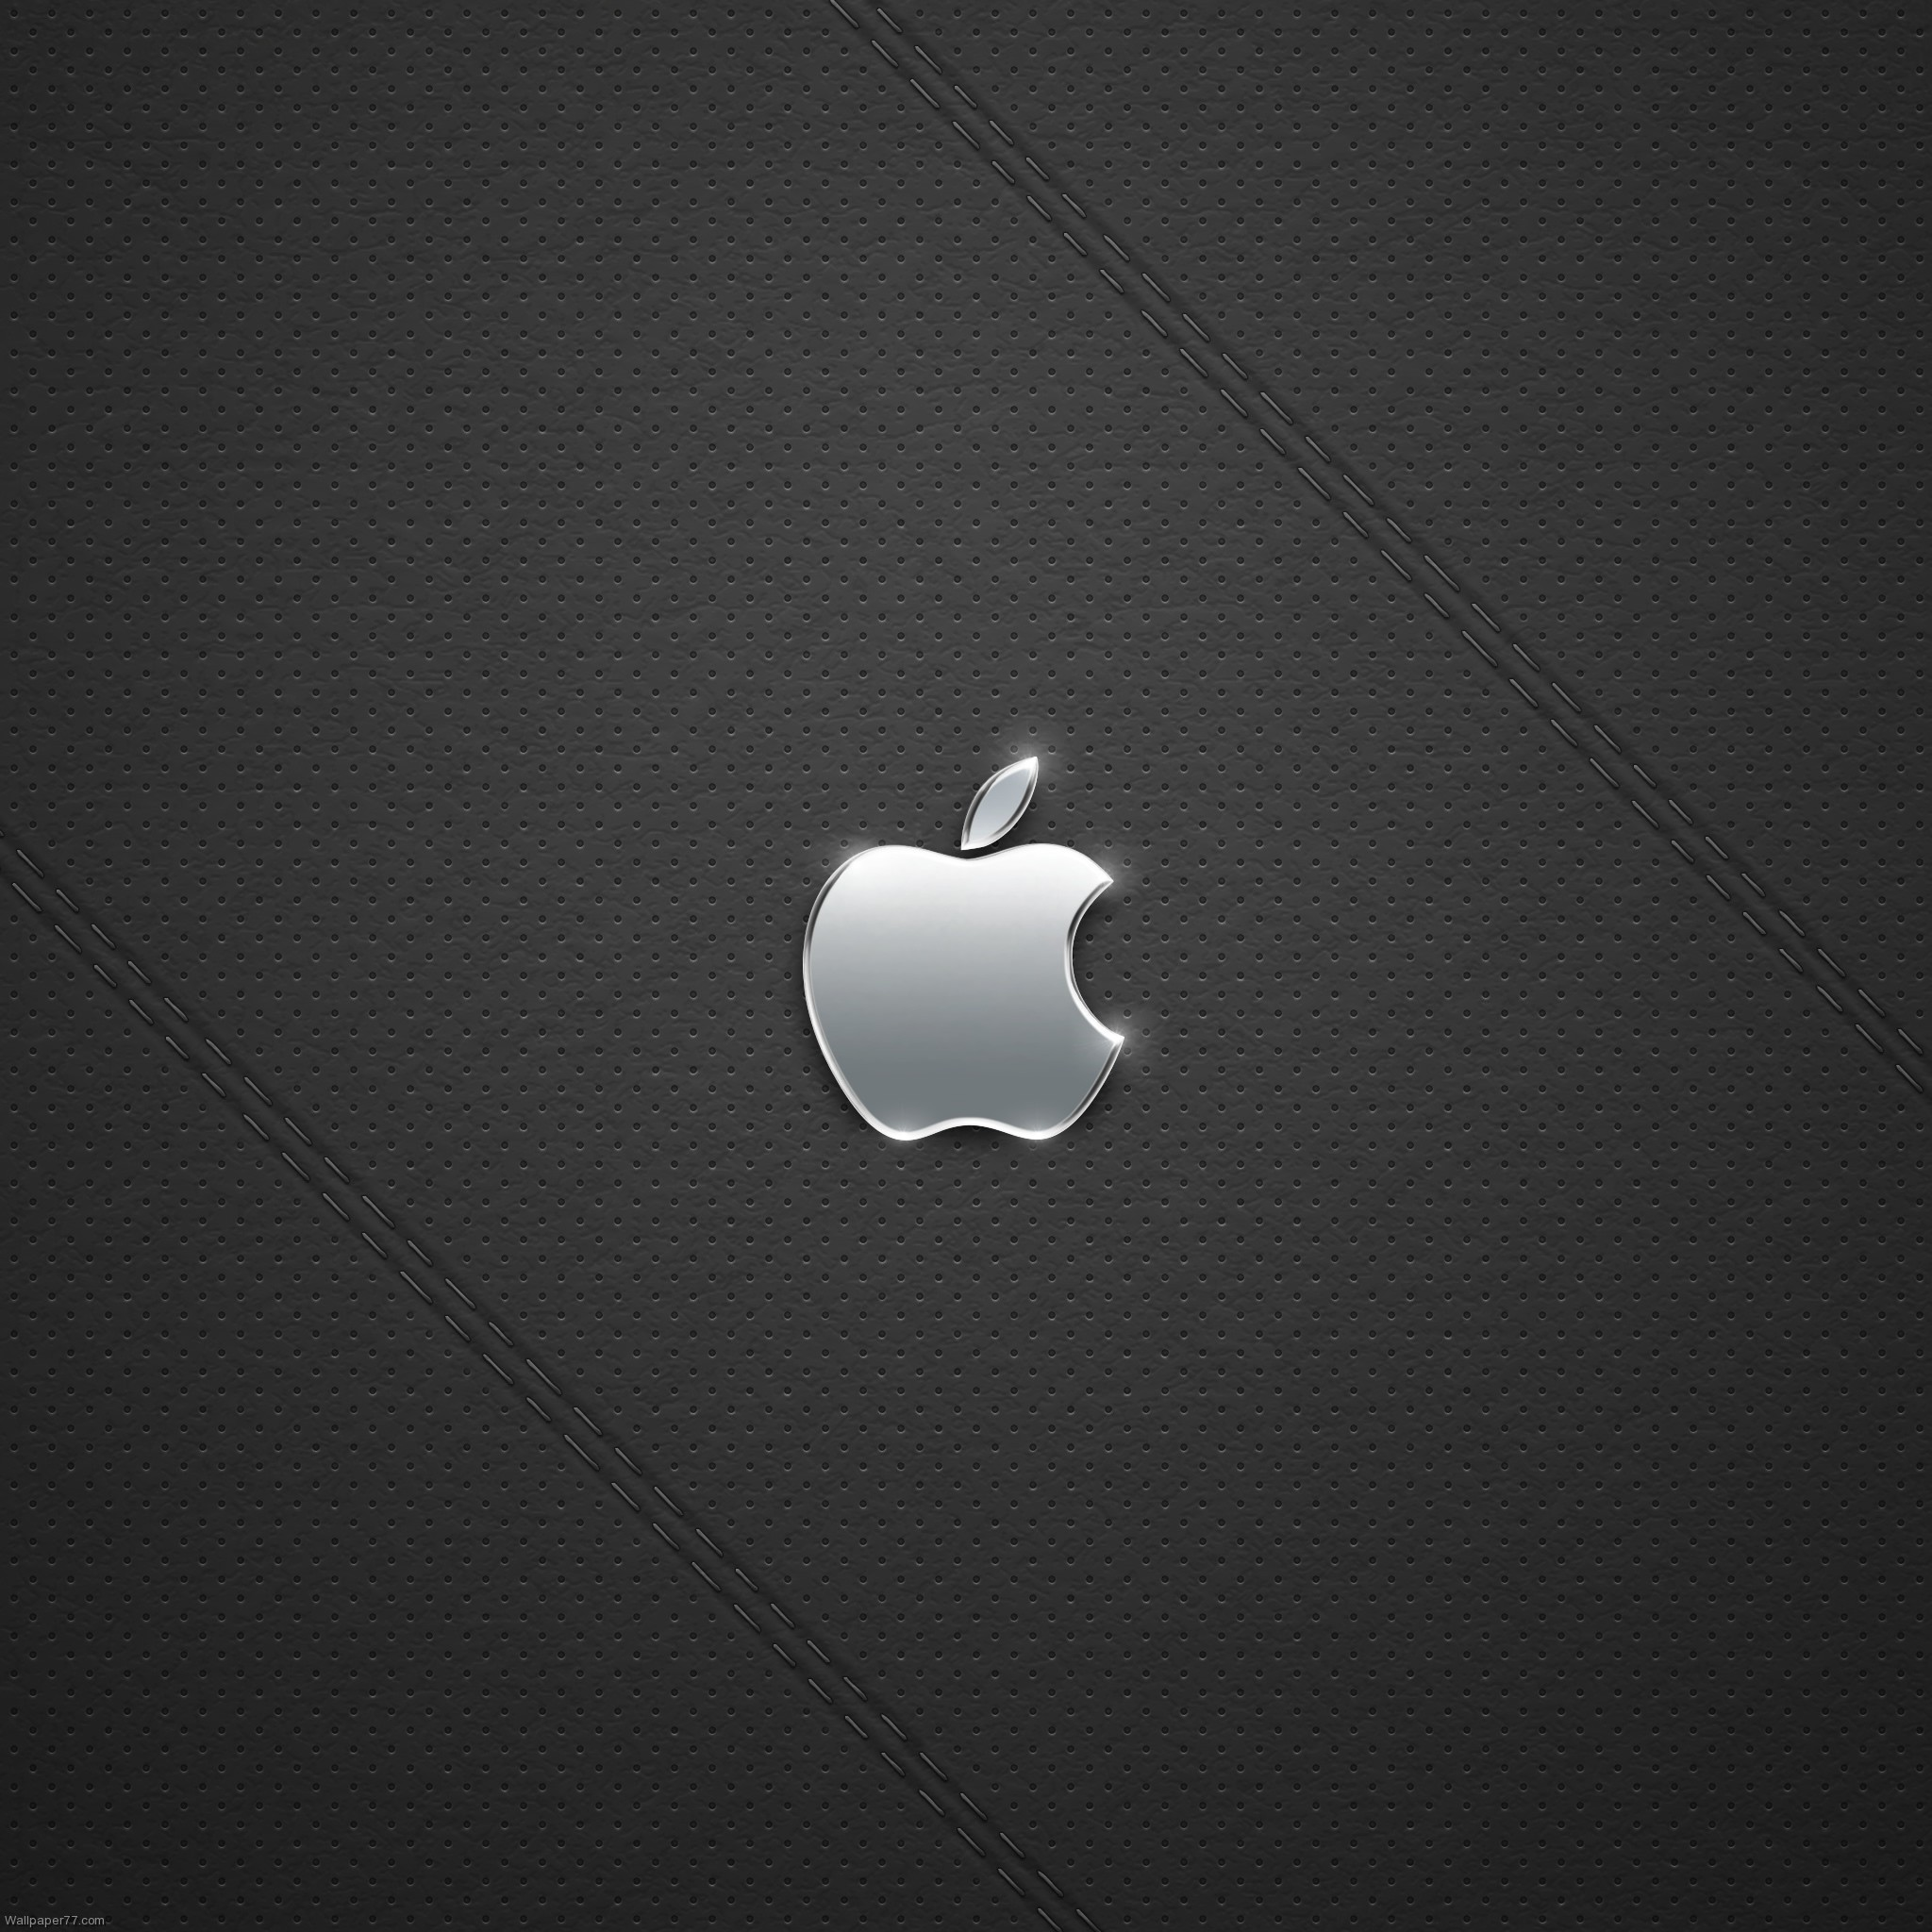 wallpaper the new ipad wallpaper apple wallpapers computer wallpapers 2048x2048